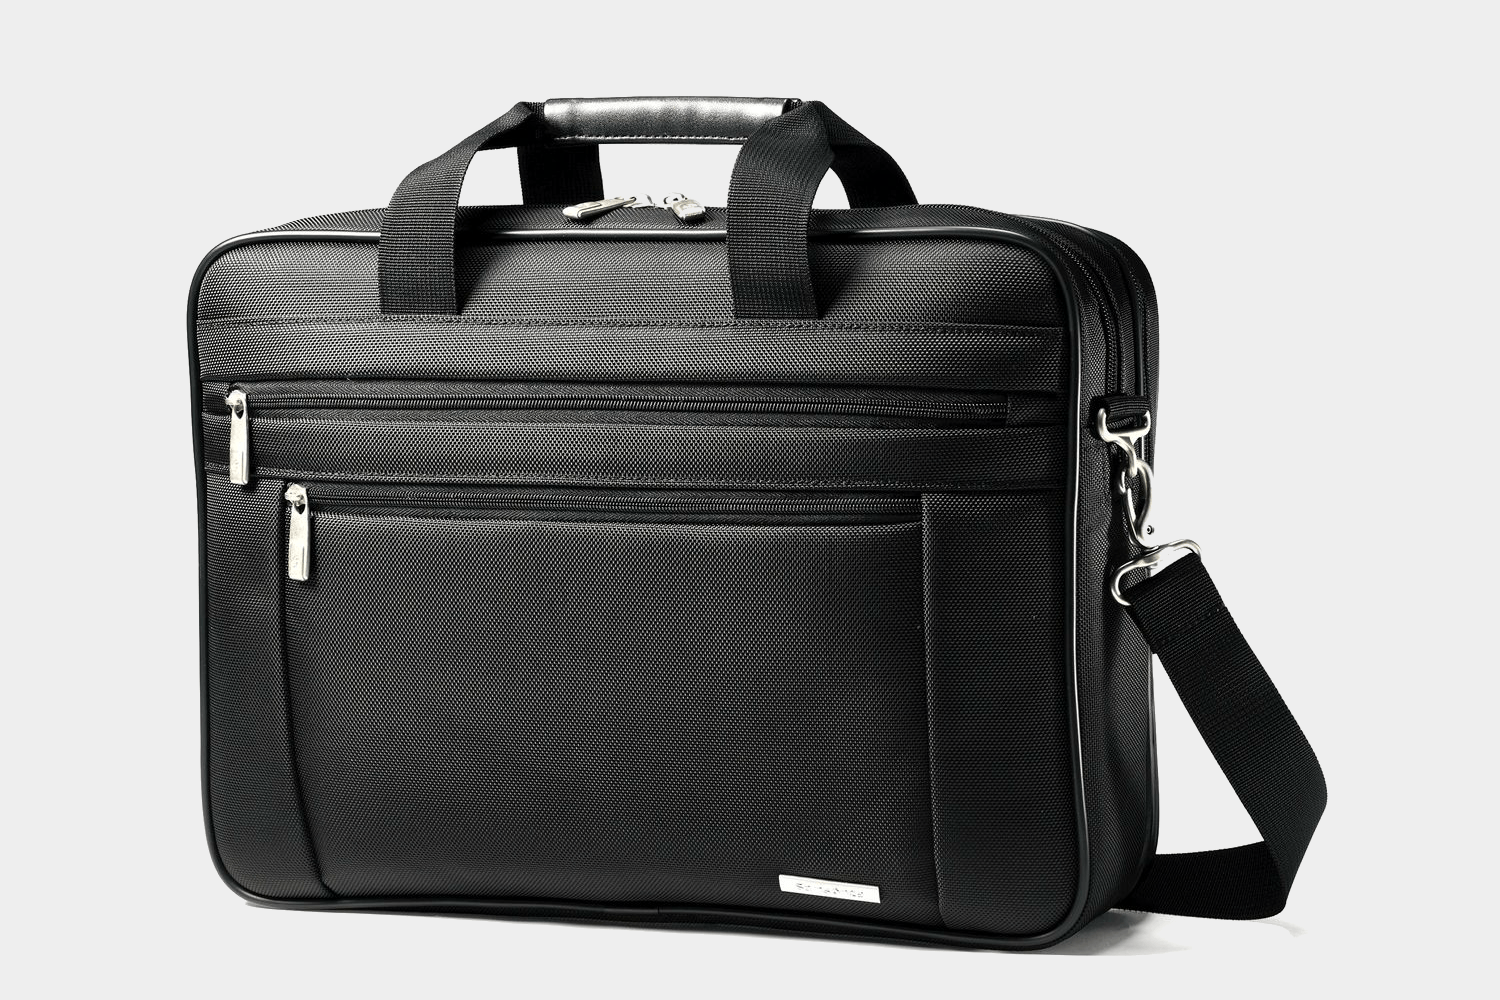 Top 10 Best Laptop Bags and Cases ⋆ Shopcalypse.com